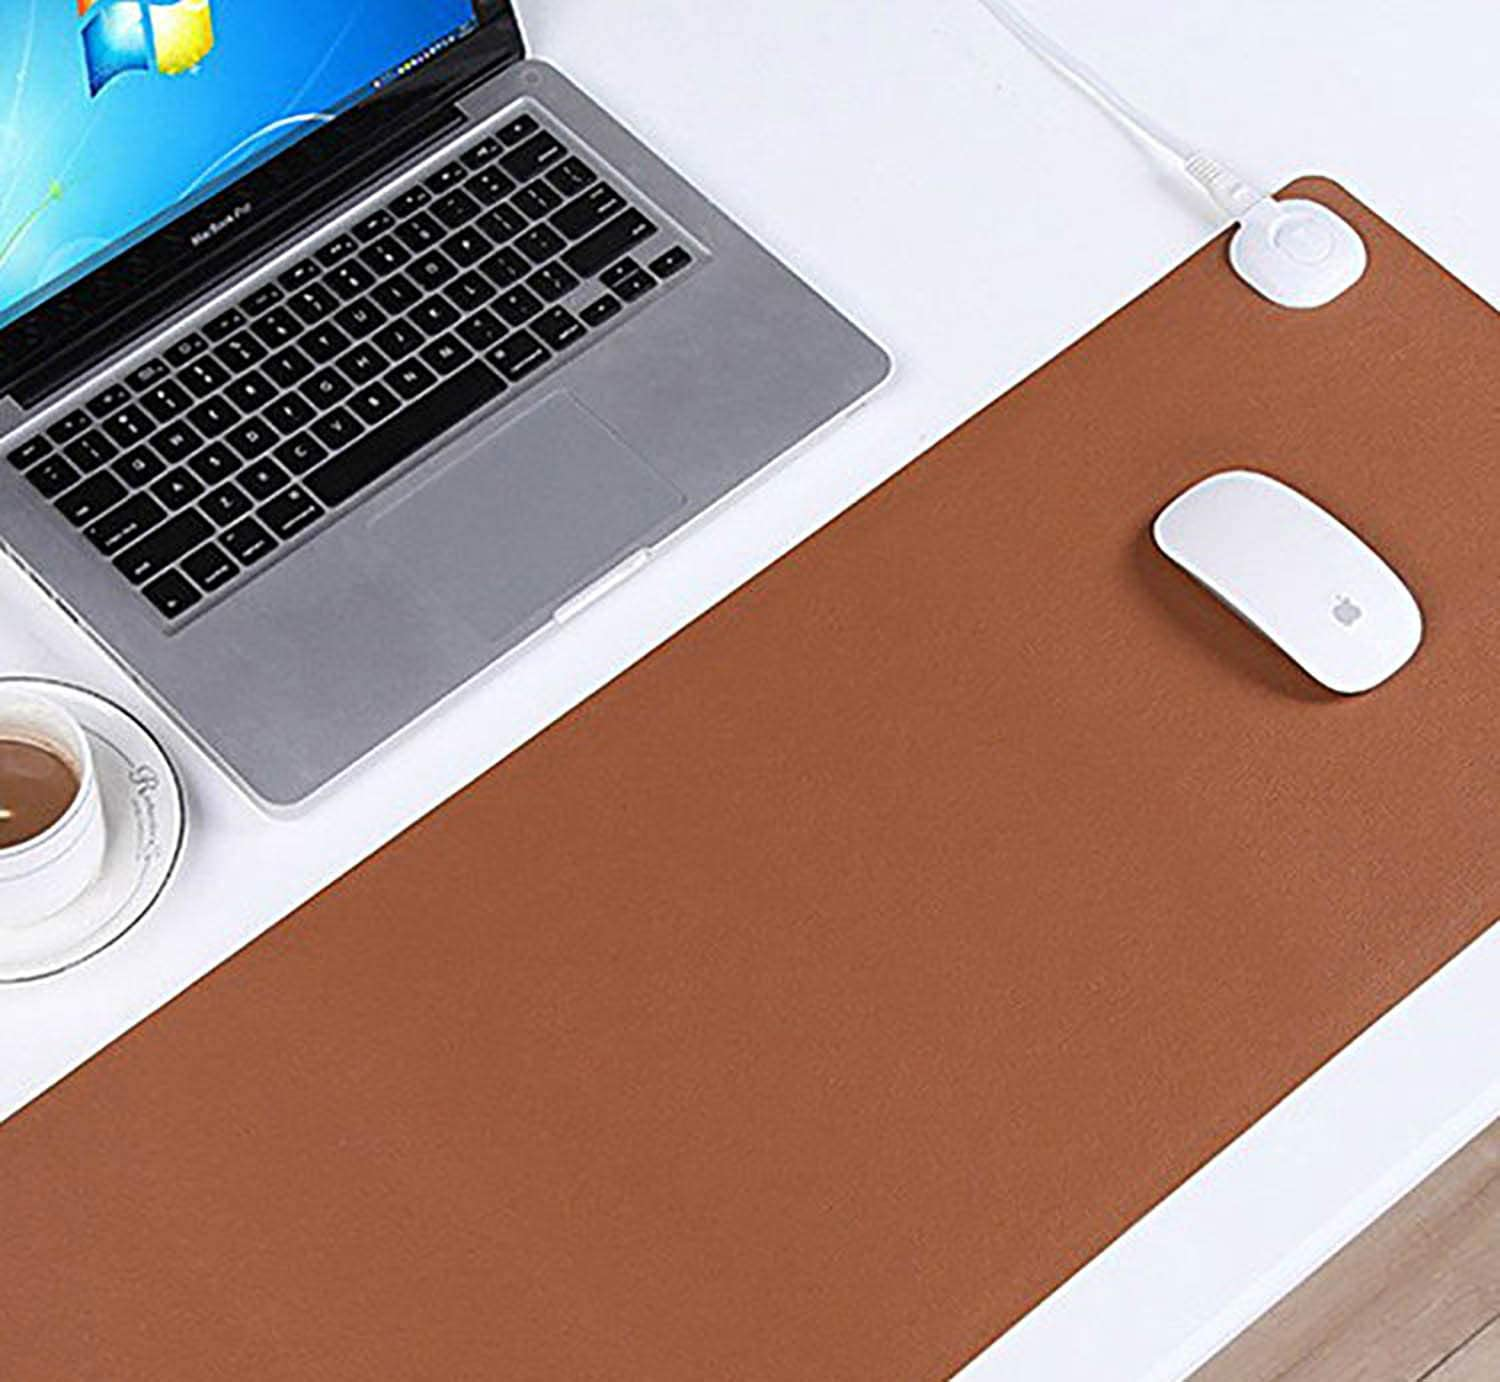 JJdd USB Warm Mouse Pad,USB Heated Mouse Pad,heated Mouse Pad,hand Warmer,oversized Desk Student Dormitory Desk Mat,simple Waterproof And Warm,5-10 Seconds Heating,constant Temperature Chip